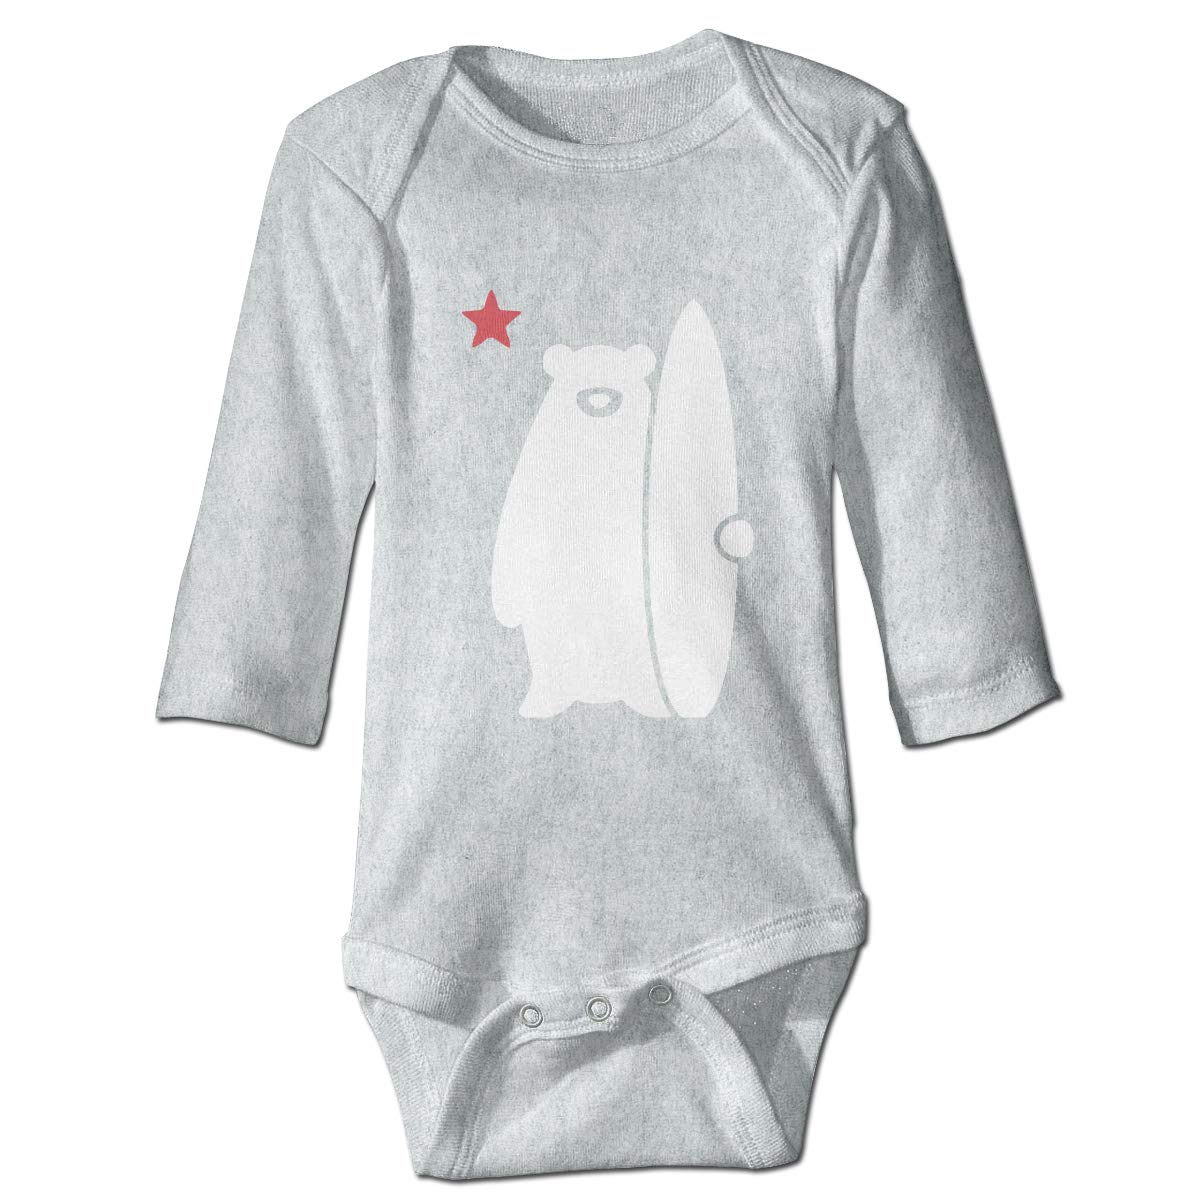 MMHOME Unisex Cotton Long Sleeve California Surf Bear Baby Rompers for 6-24 Month Baby Gray